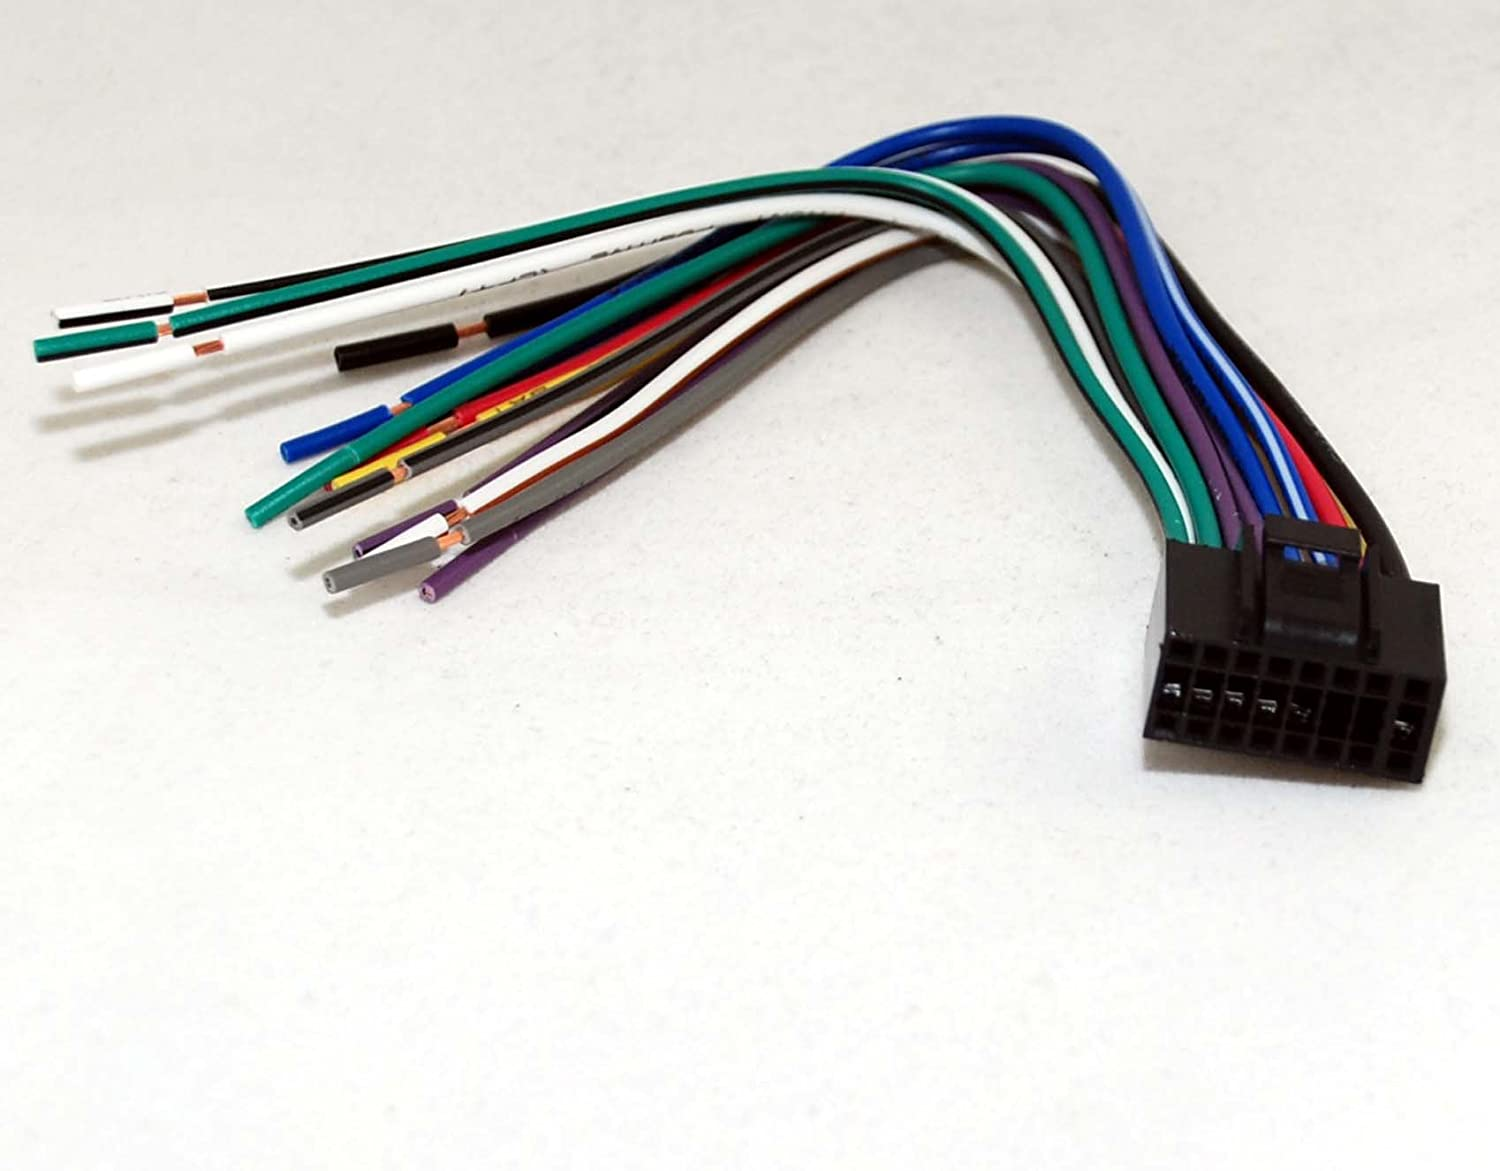 61Rzeblbo0L._SL1500_ amazon com xtenzi harness for dual 16 pin wire harness xdvd8181 dual model xdvd710 wiring diagram at n-0.co